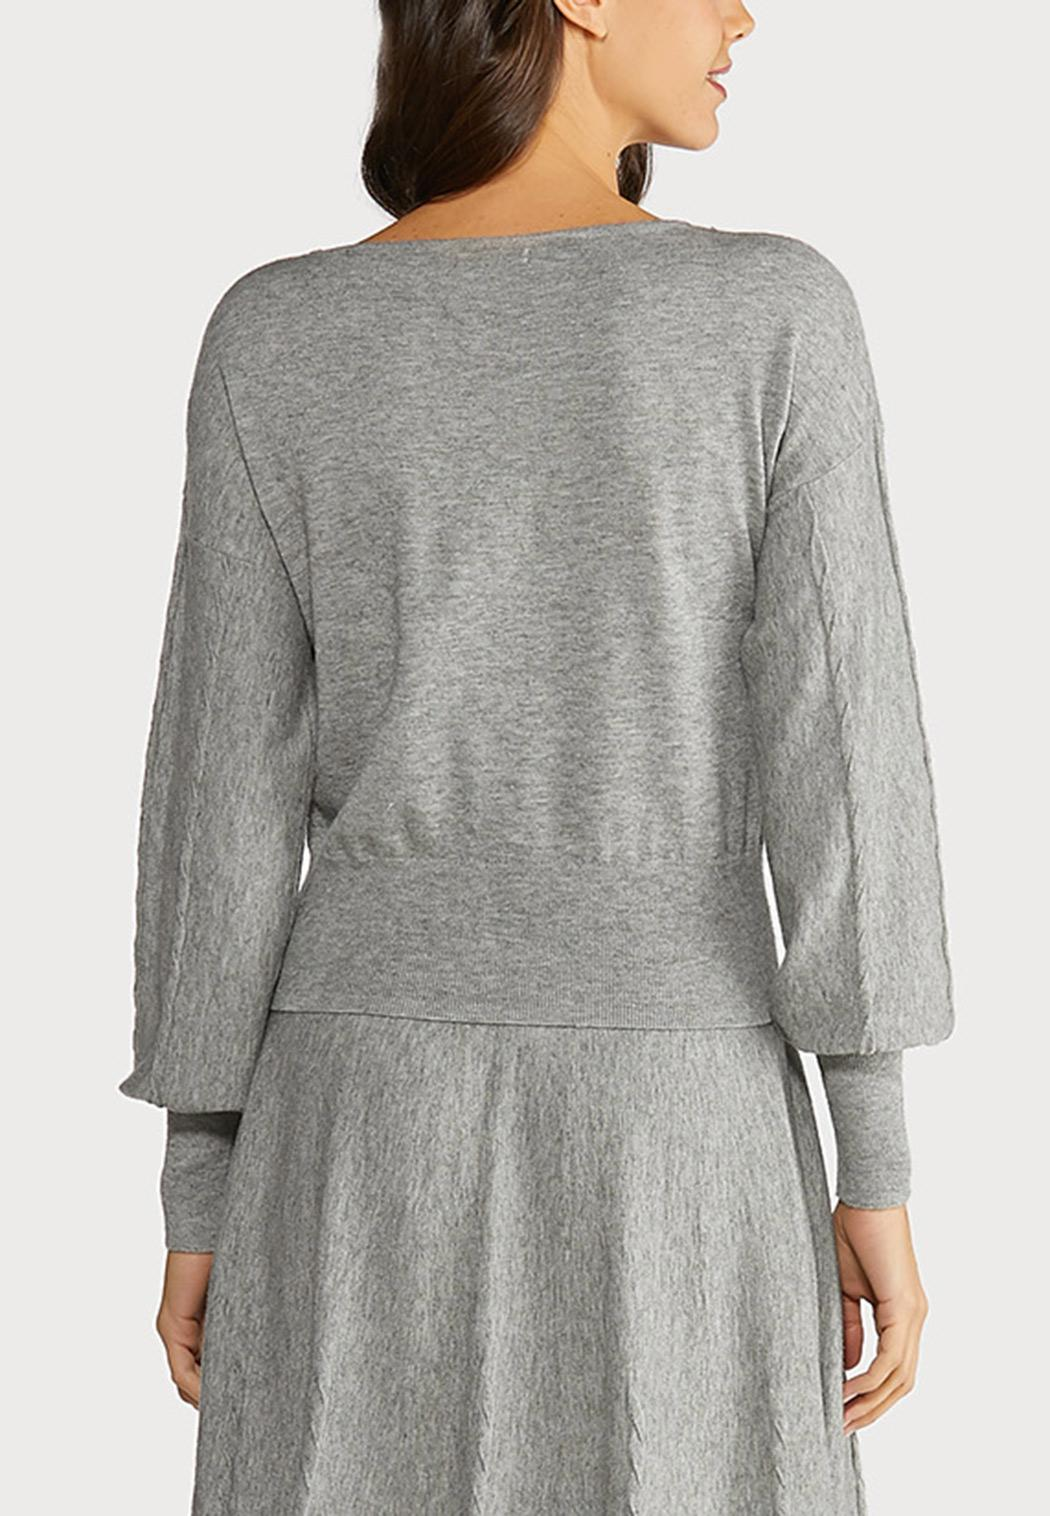 Plus Size Gray Cable Knit Sweater (Item #44066173)